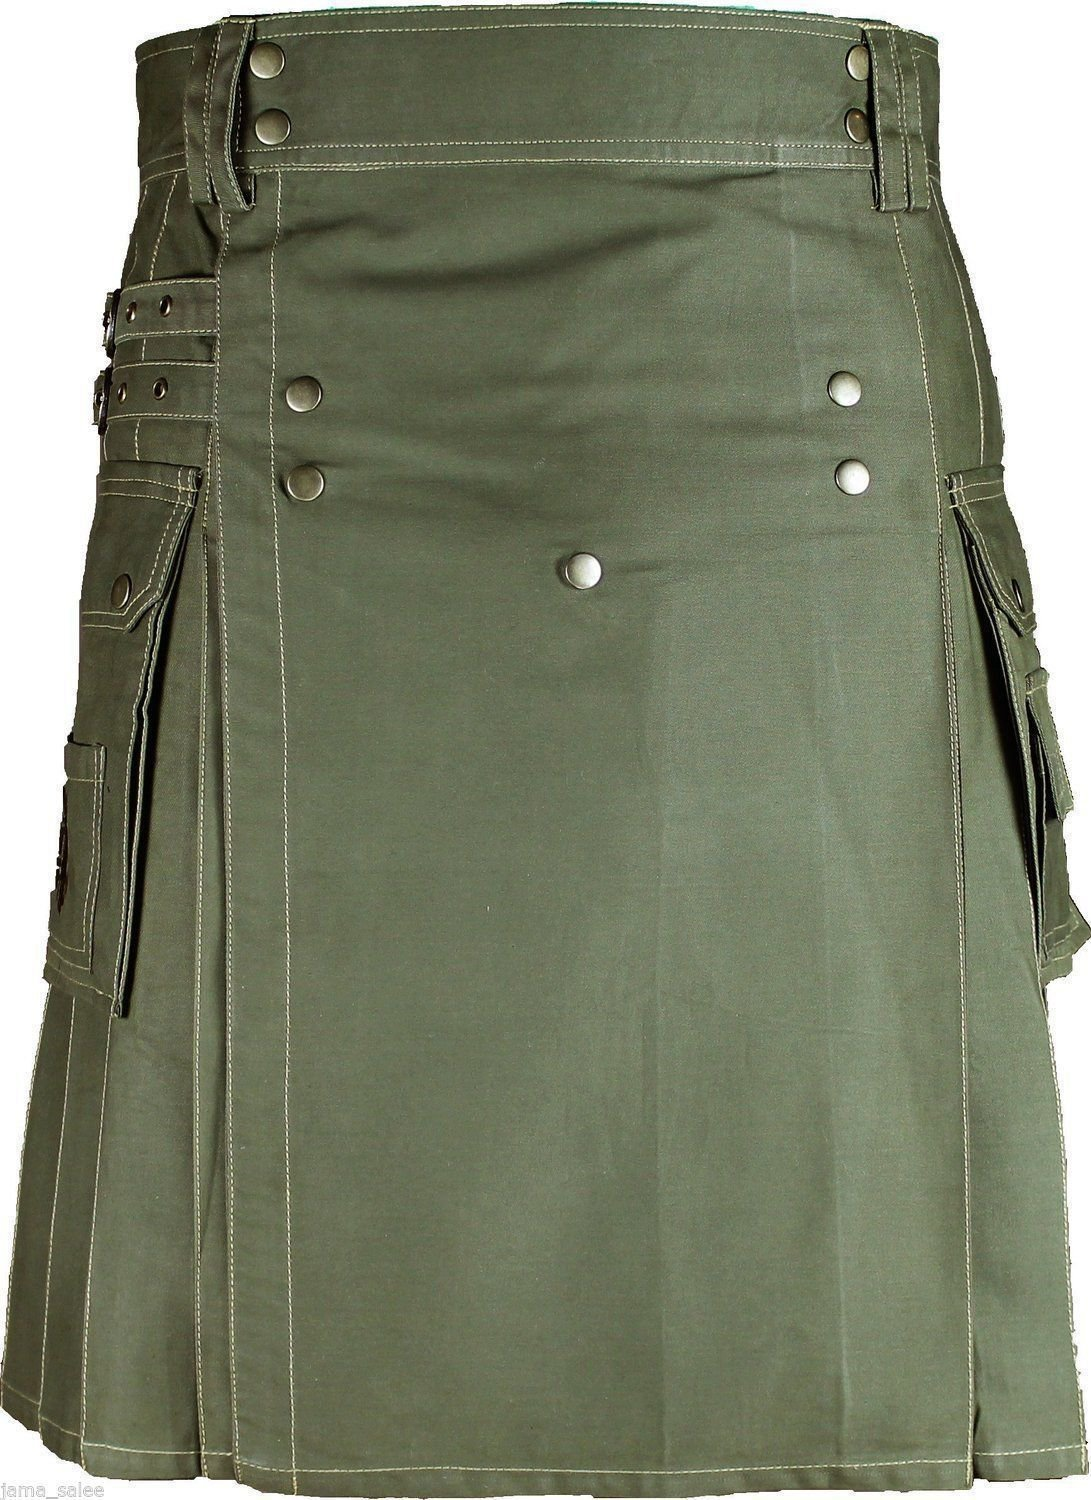 Size 48 Handmade Modern Utility Olive Green Cotton Kilt With Big Cargo Pockets Brass Materials